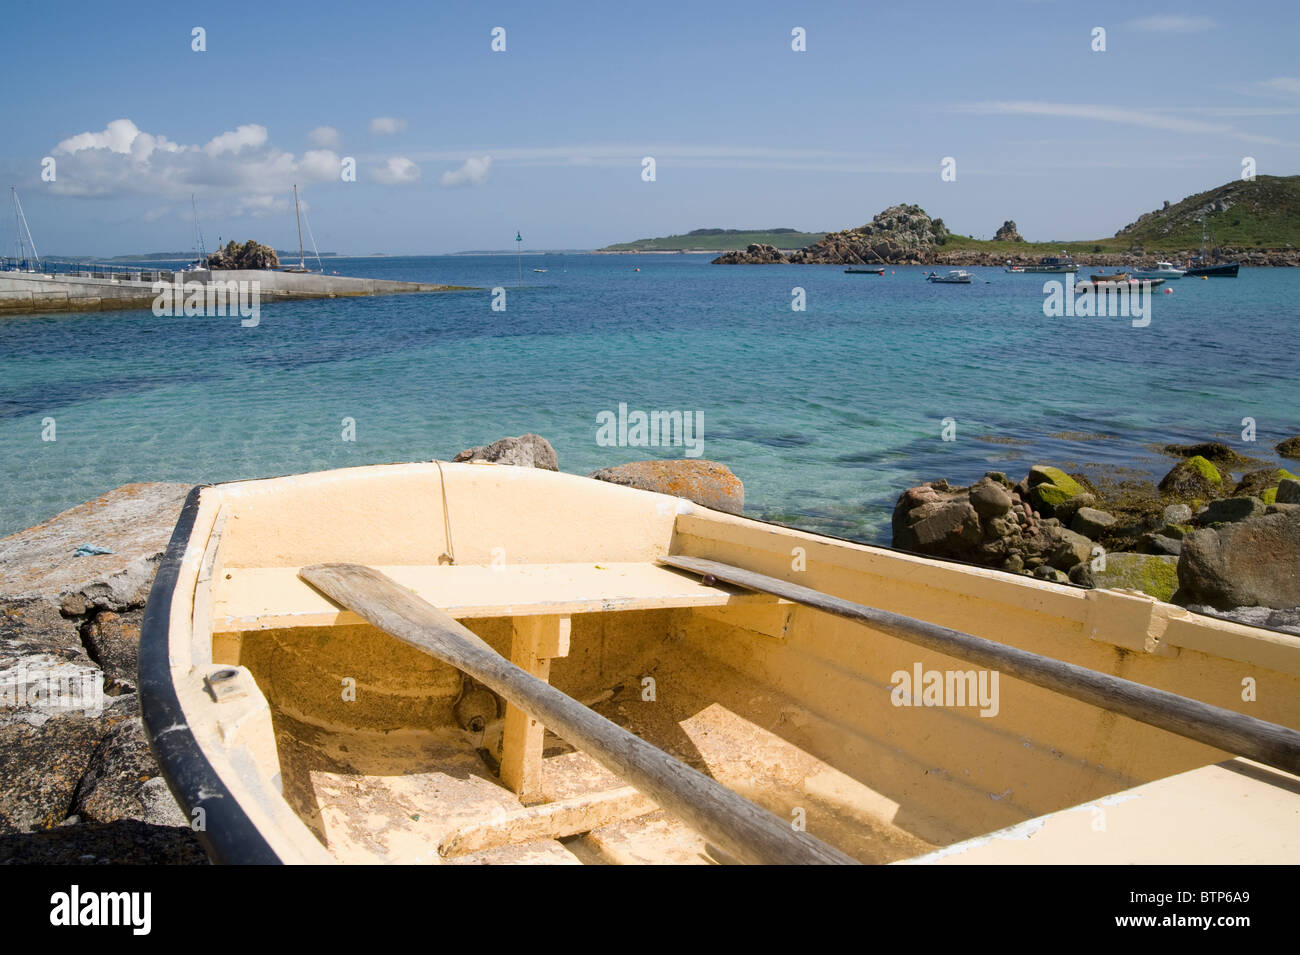 Rowing Boat on St. Agnes, Isles of Scilly, UK. - Stock Image